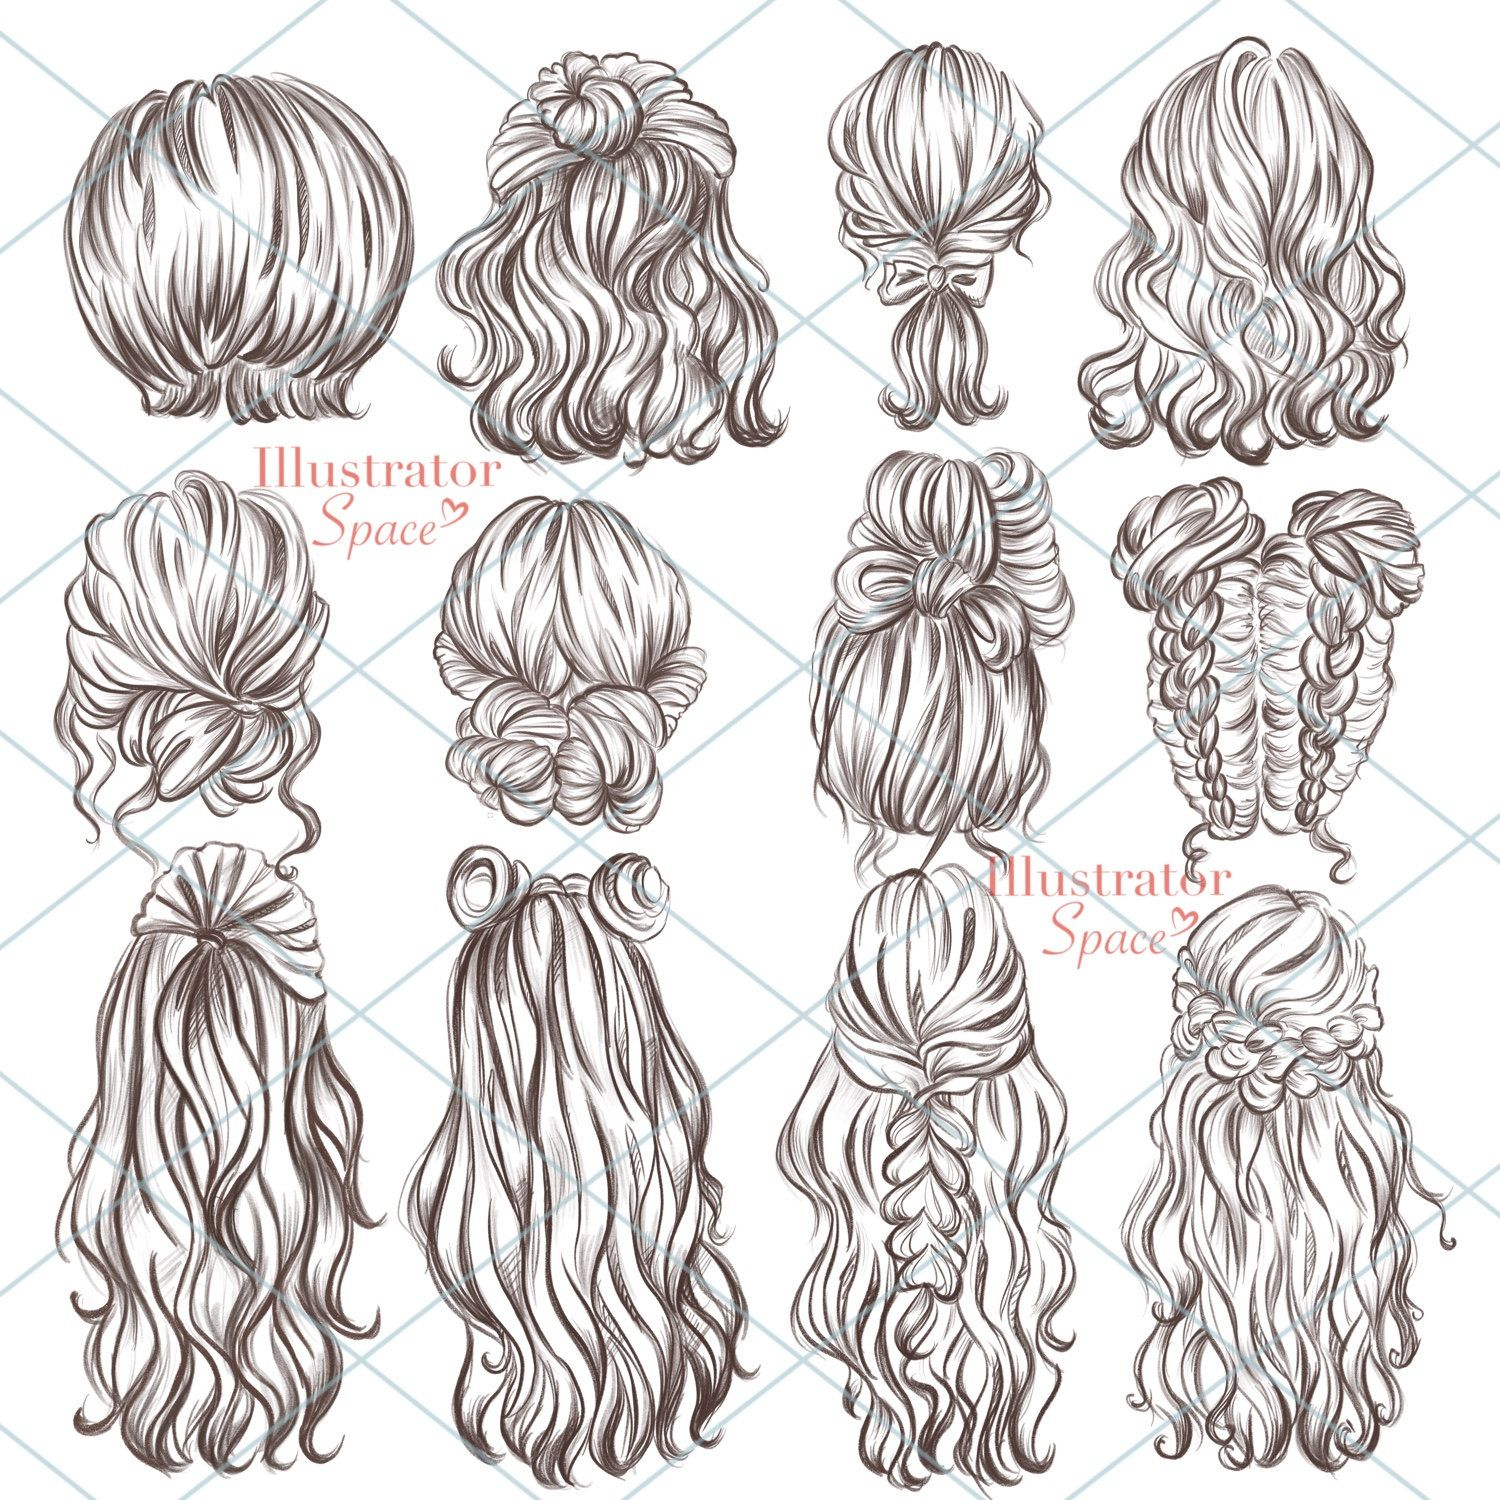 Hairstyles Clipart Hair Set Digital Download Custom Hairstyles Hair Clip Art Character Hair Fashion Girl Gift Planner Clipart 12 Png Images In 2020 Hair Sketch Hair Clipart Hair Setting